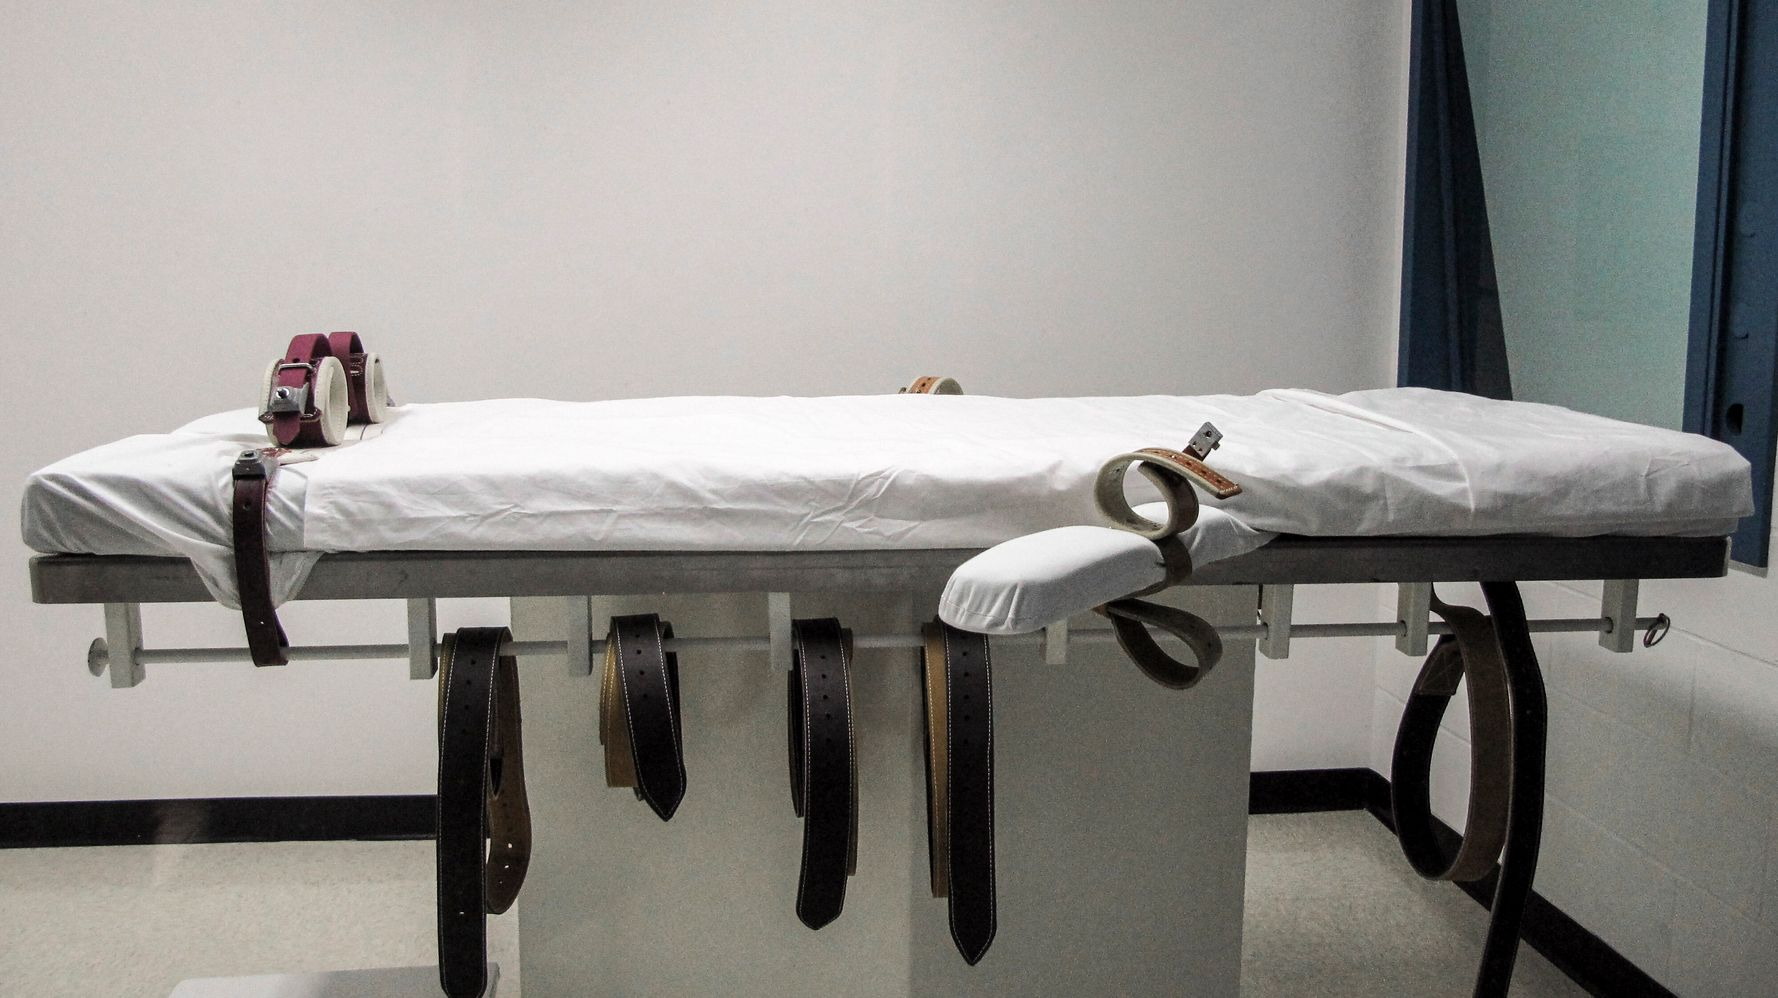 Supreme Court Rules Federal Executions May Proceed